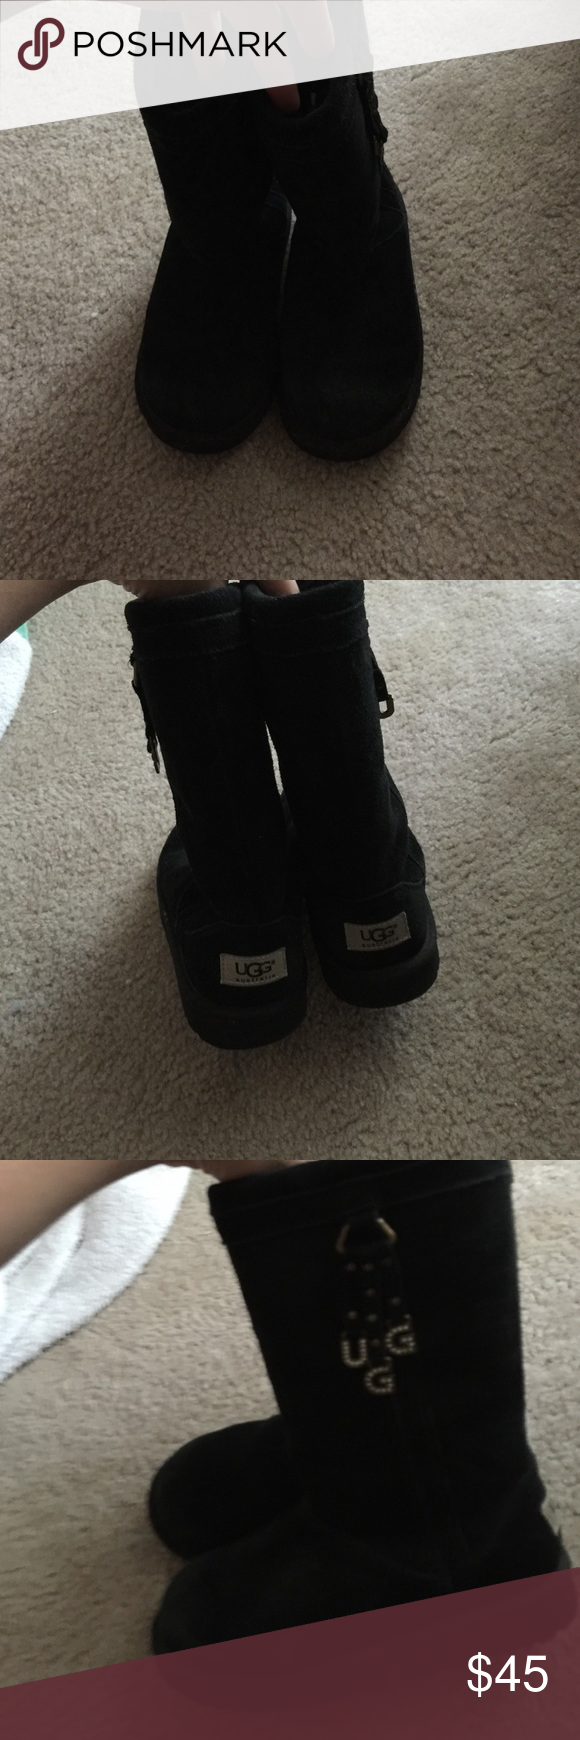 Ugg boots size 2 girls Excellent condition uggs size 2 big girls UGG Shoes Boots